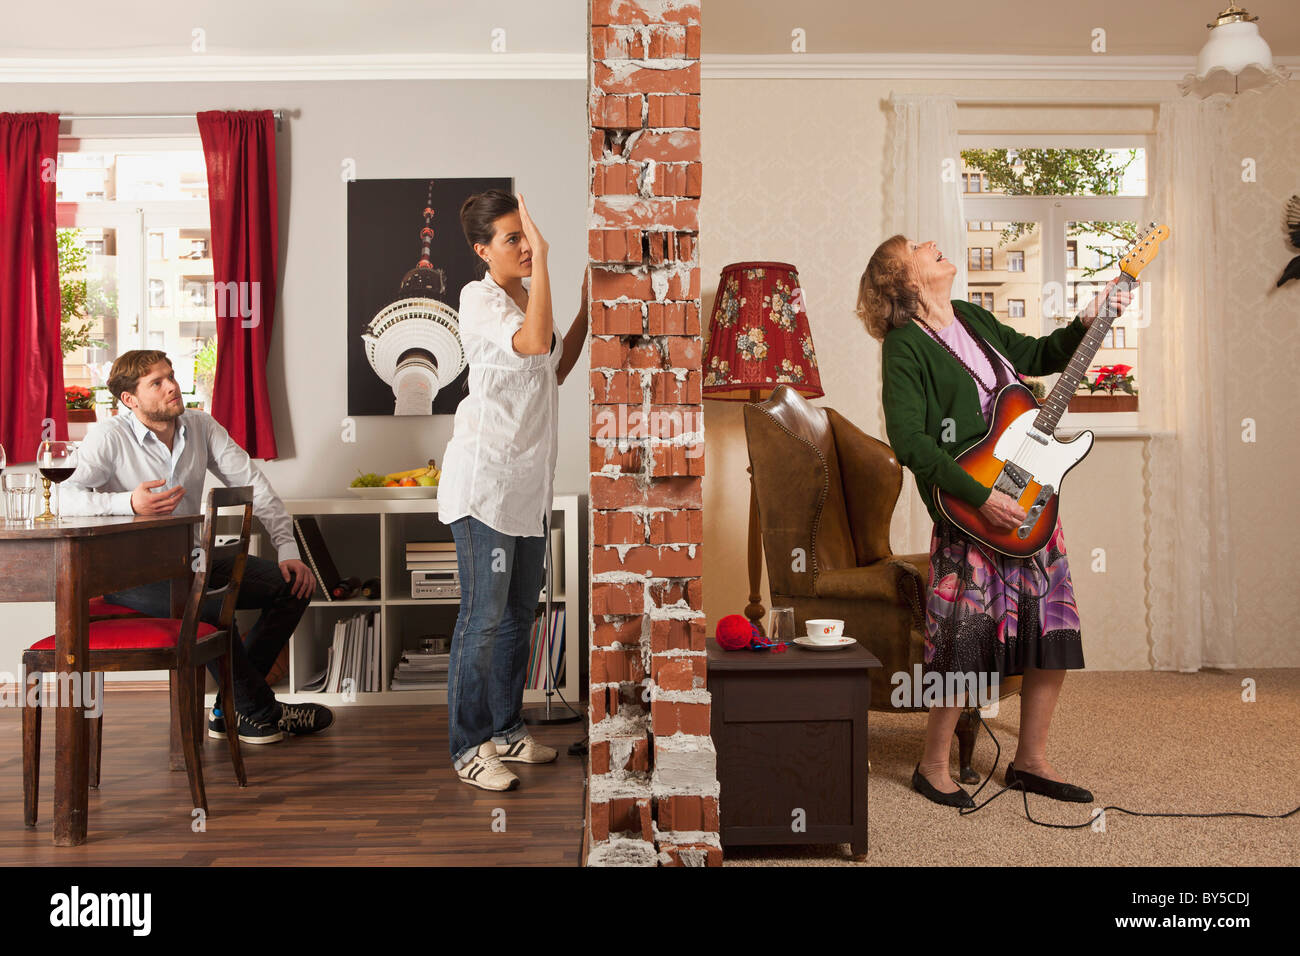 A split screen showing an angry woman pounding on the wall to her neighbor - Stock Image